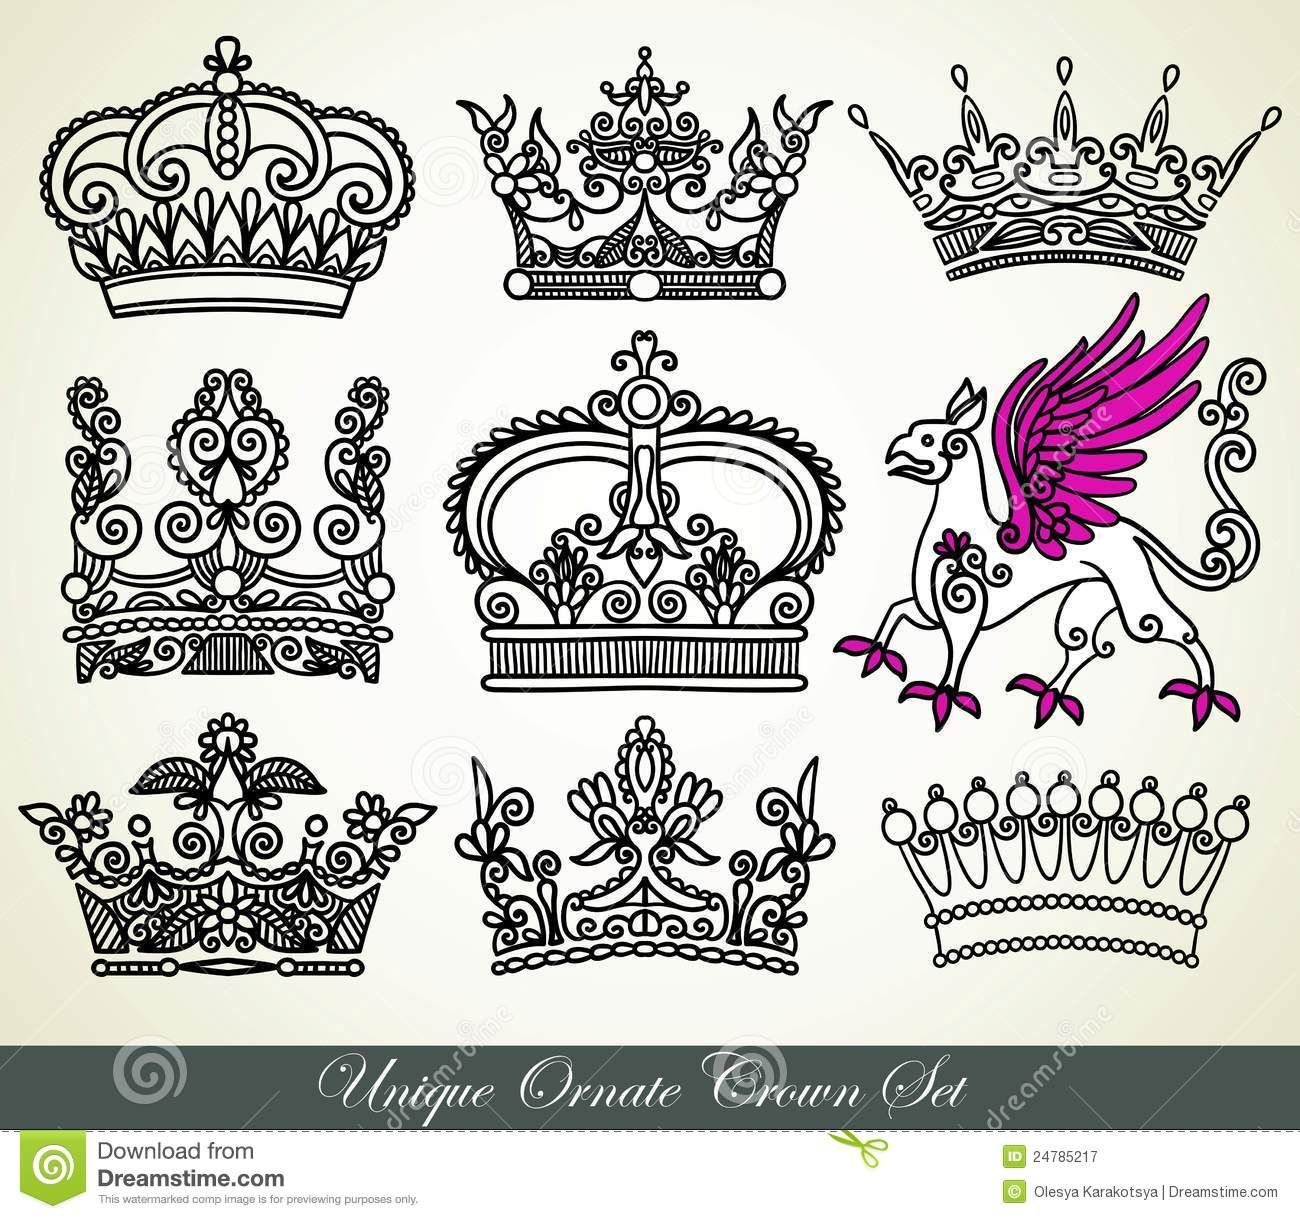 Queen Crown Tattoos Tribal tribal crown tattoo - ...